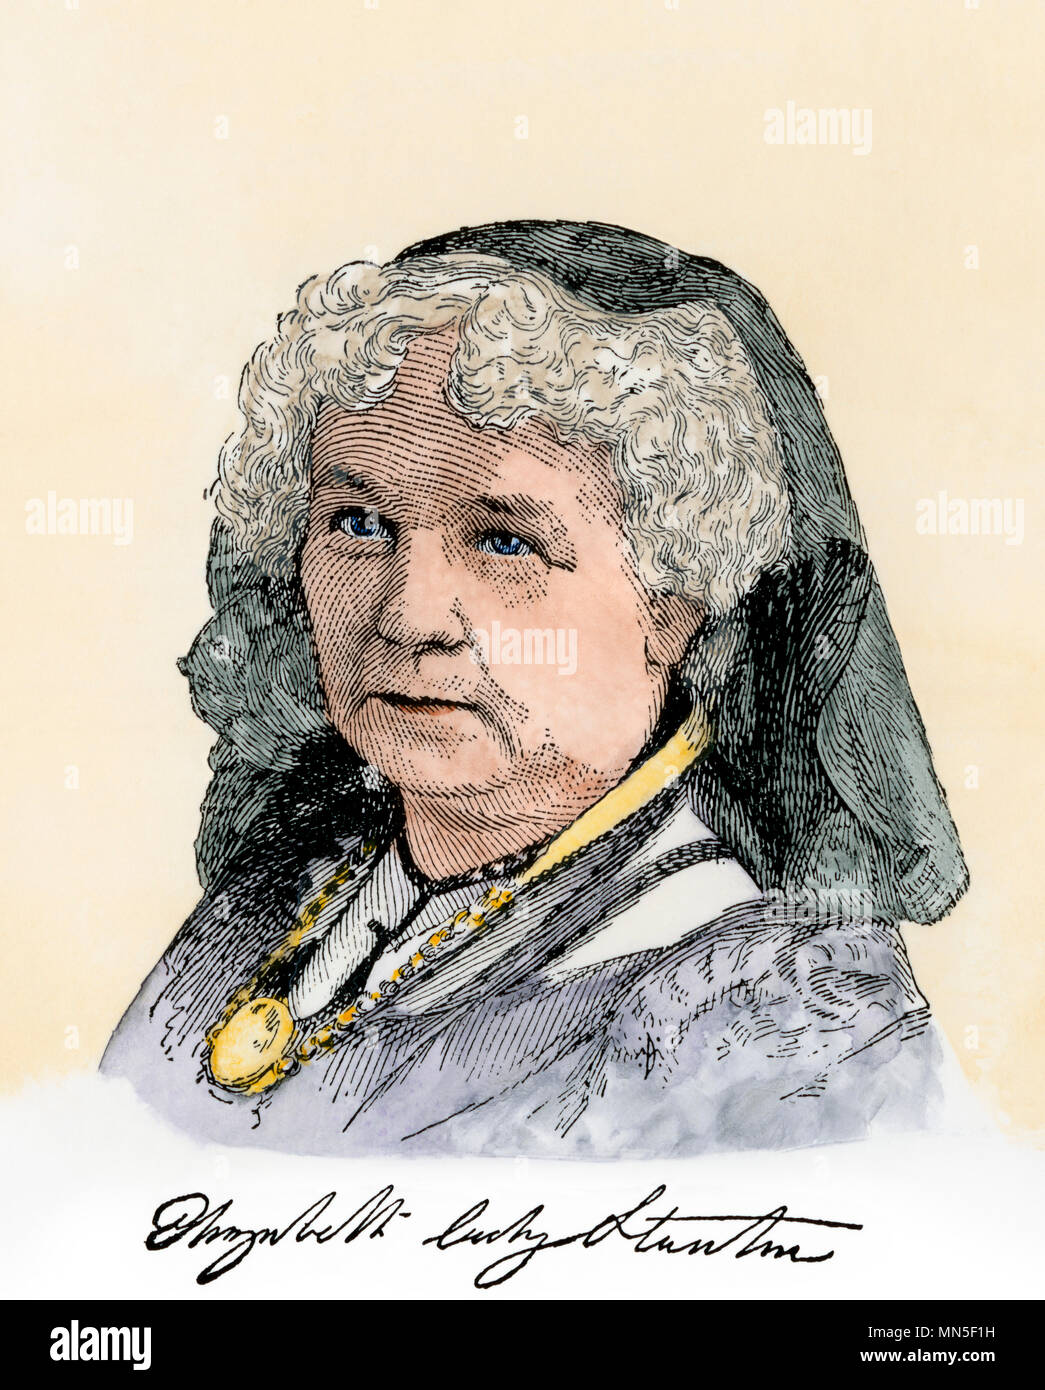 Elizabeth Cady Stanton, with her autograph. Hand-colored woodcut - Stock Image